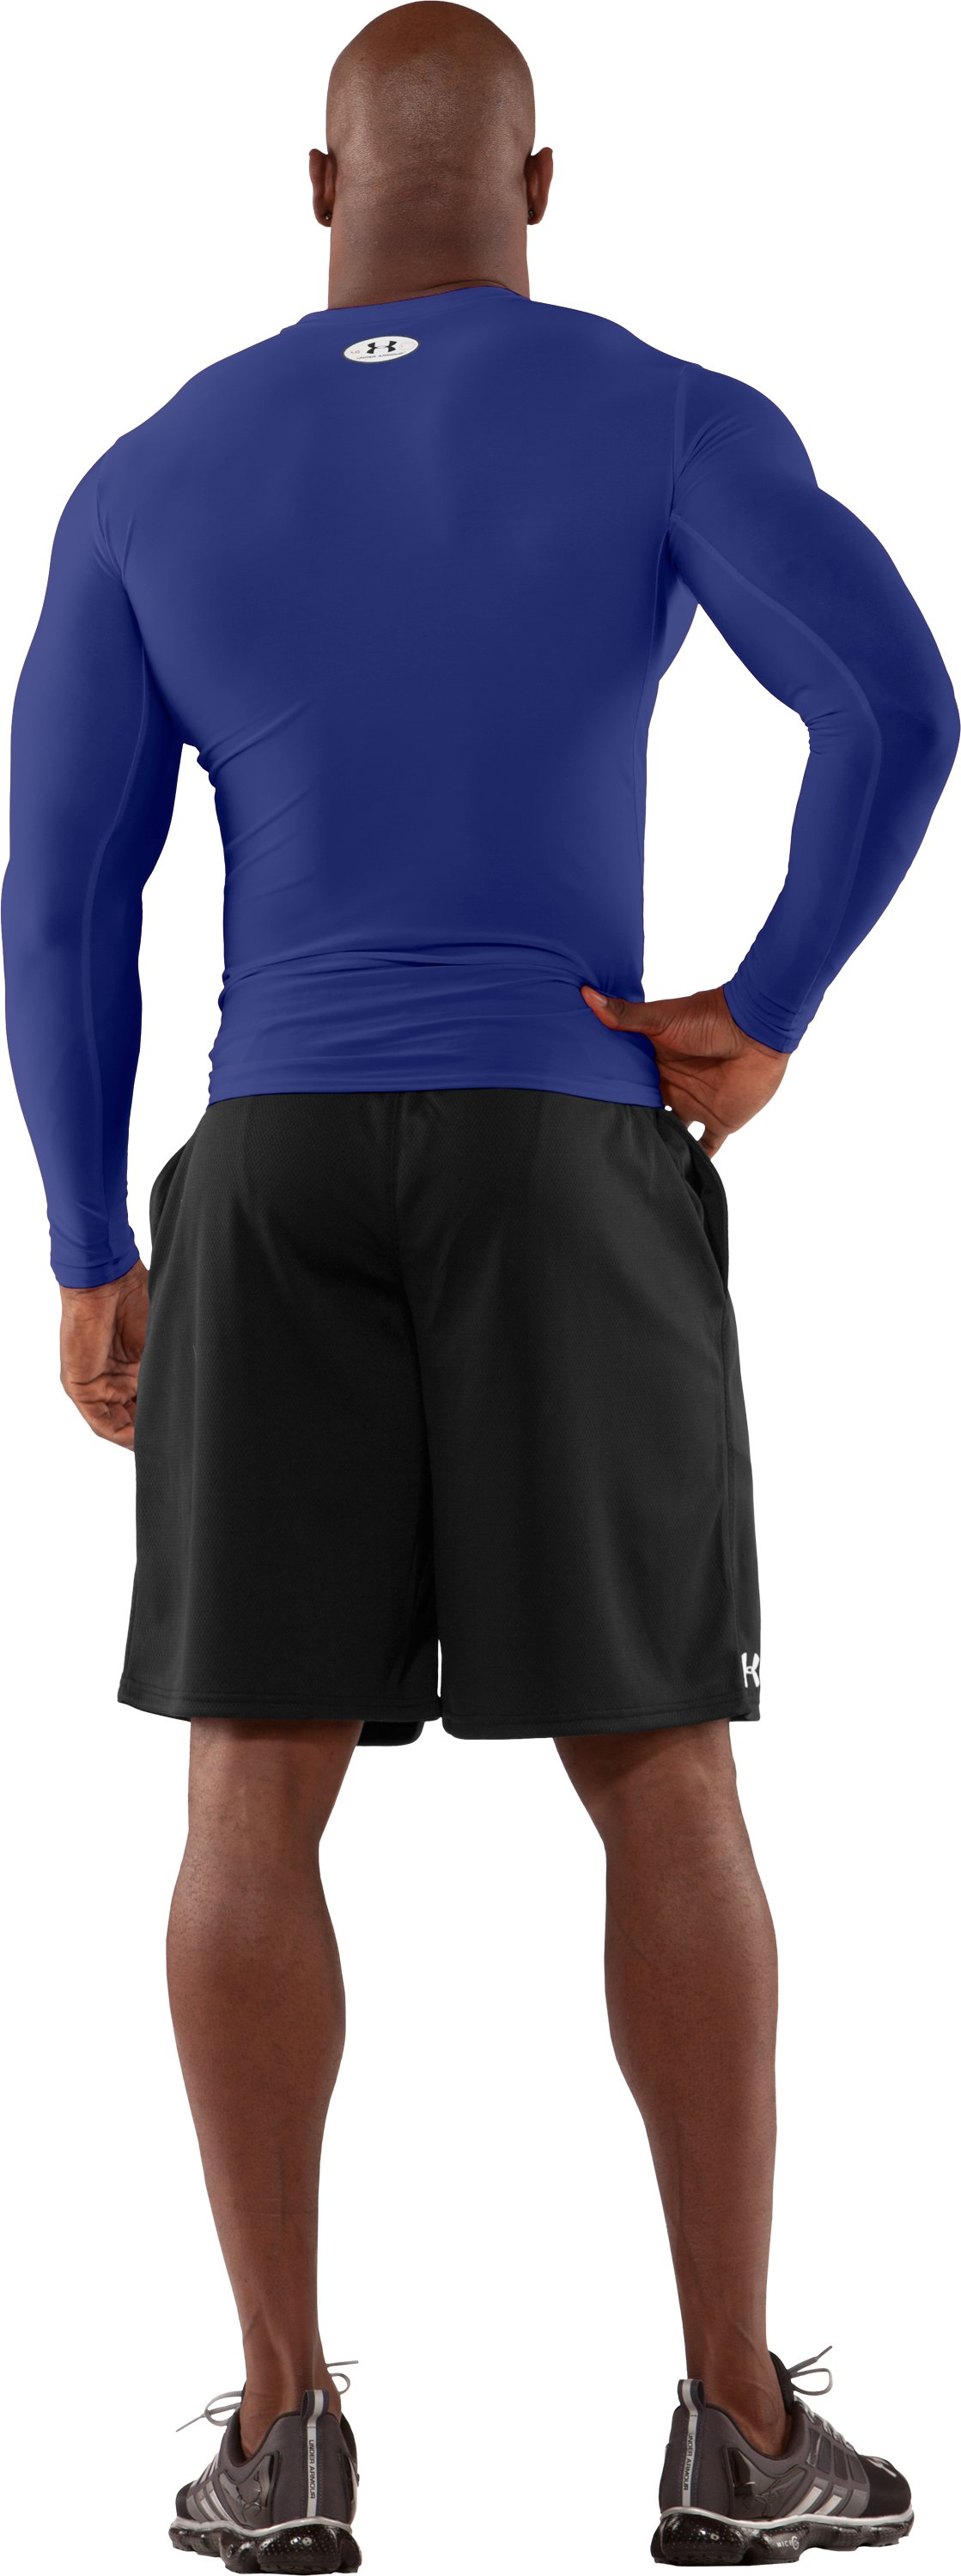 Men's HeatGear® Compression Long Sleeve T-Shirt, Royal, Back